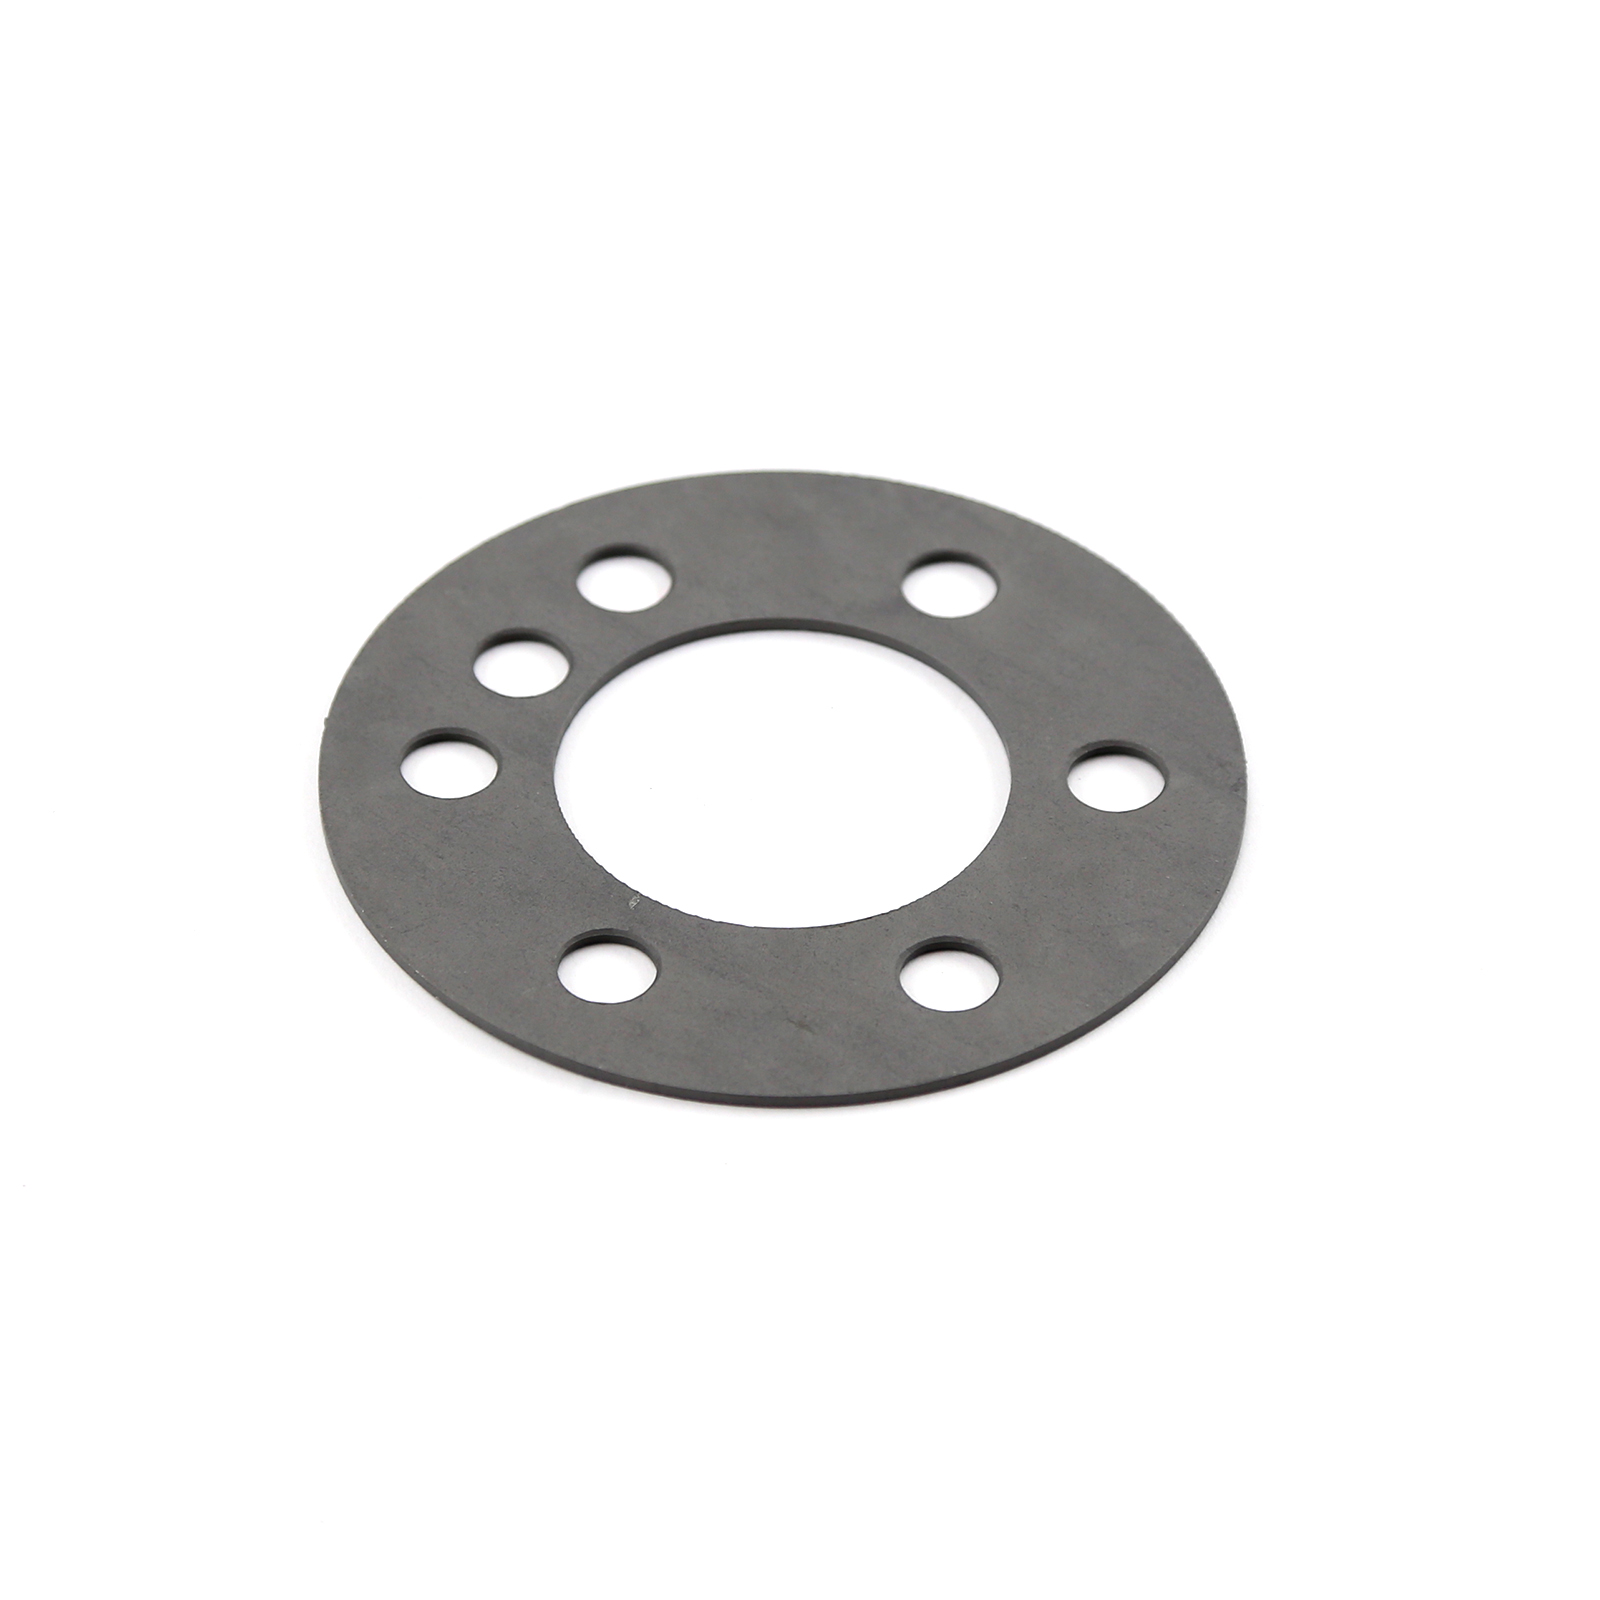 Flexplate / Flywheel Shim Spacer .075 Thick